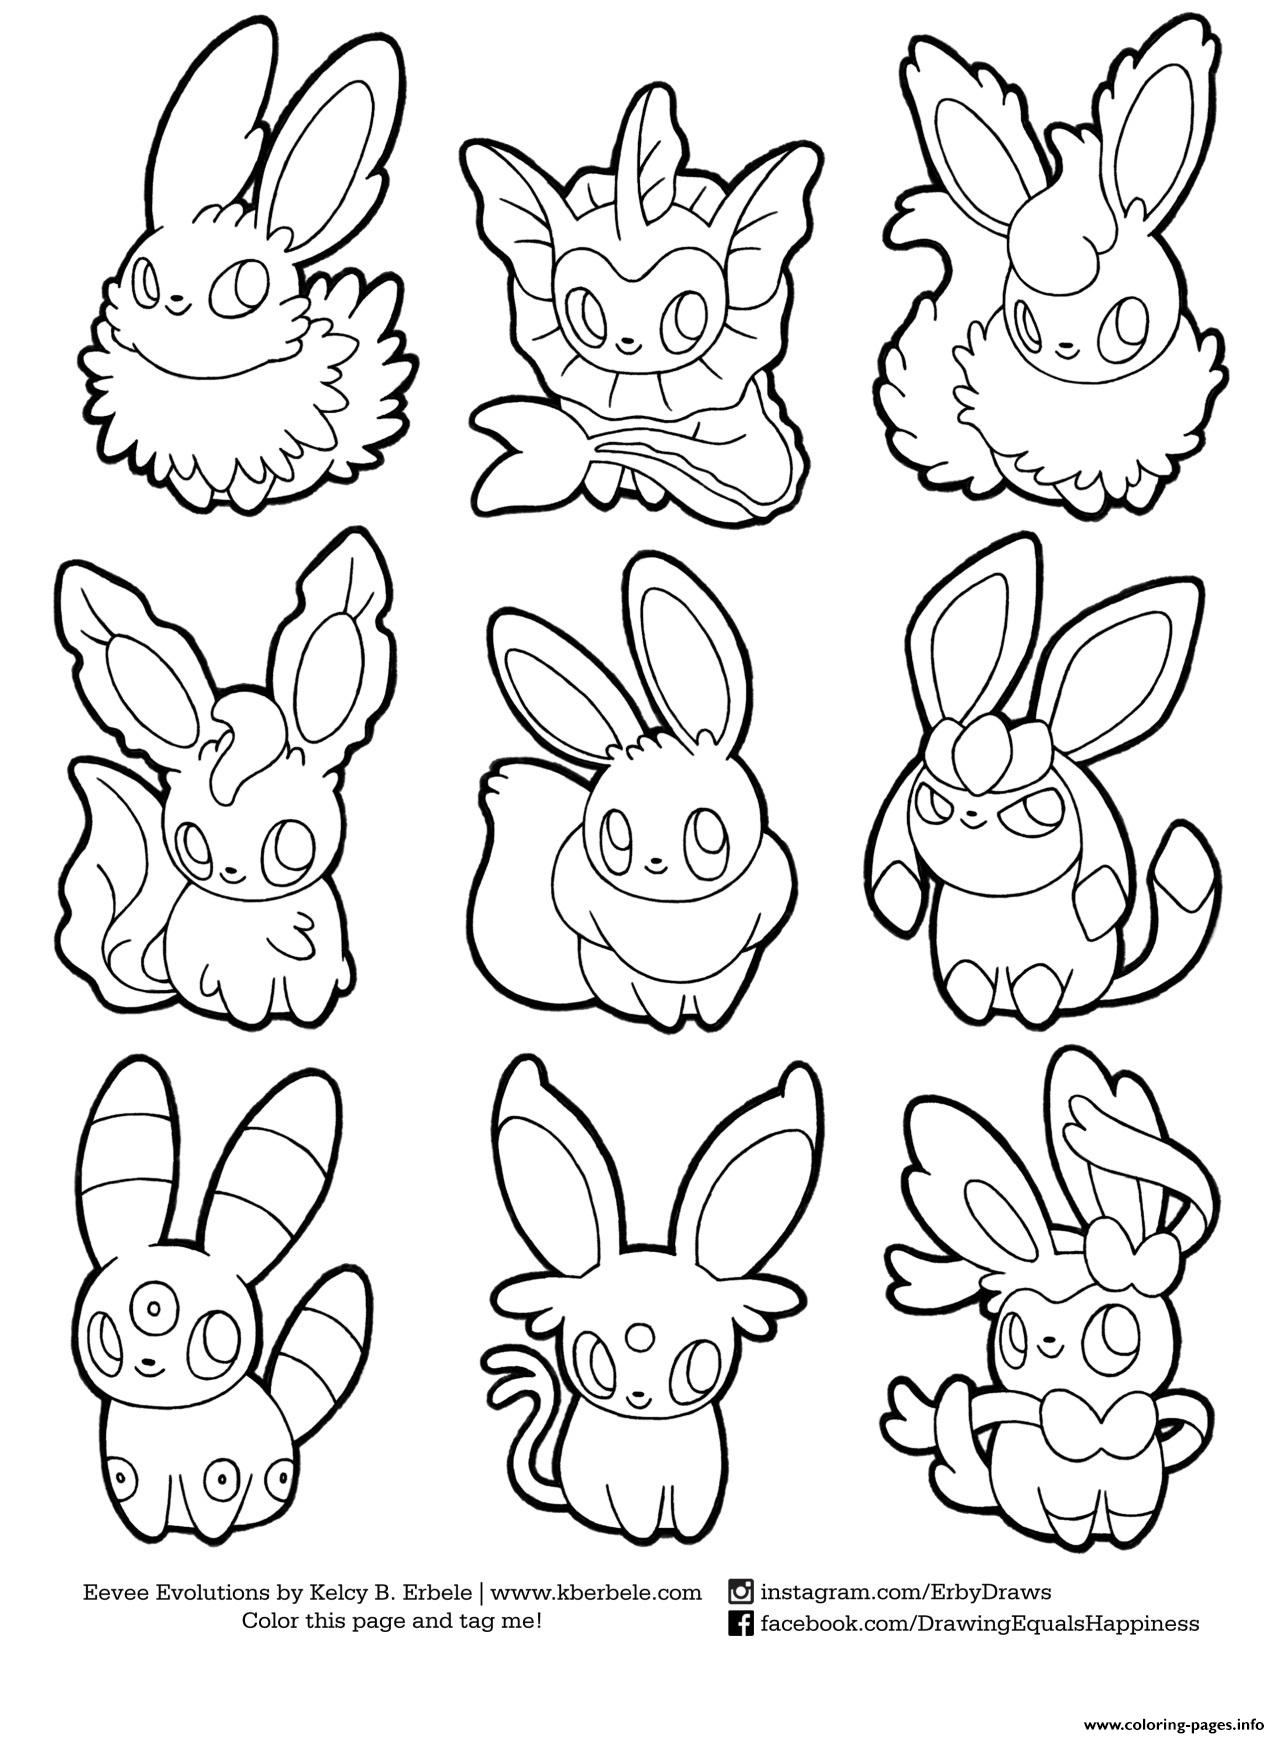 1481917925pokemon-eevee-evolutions-list